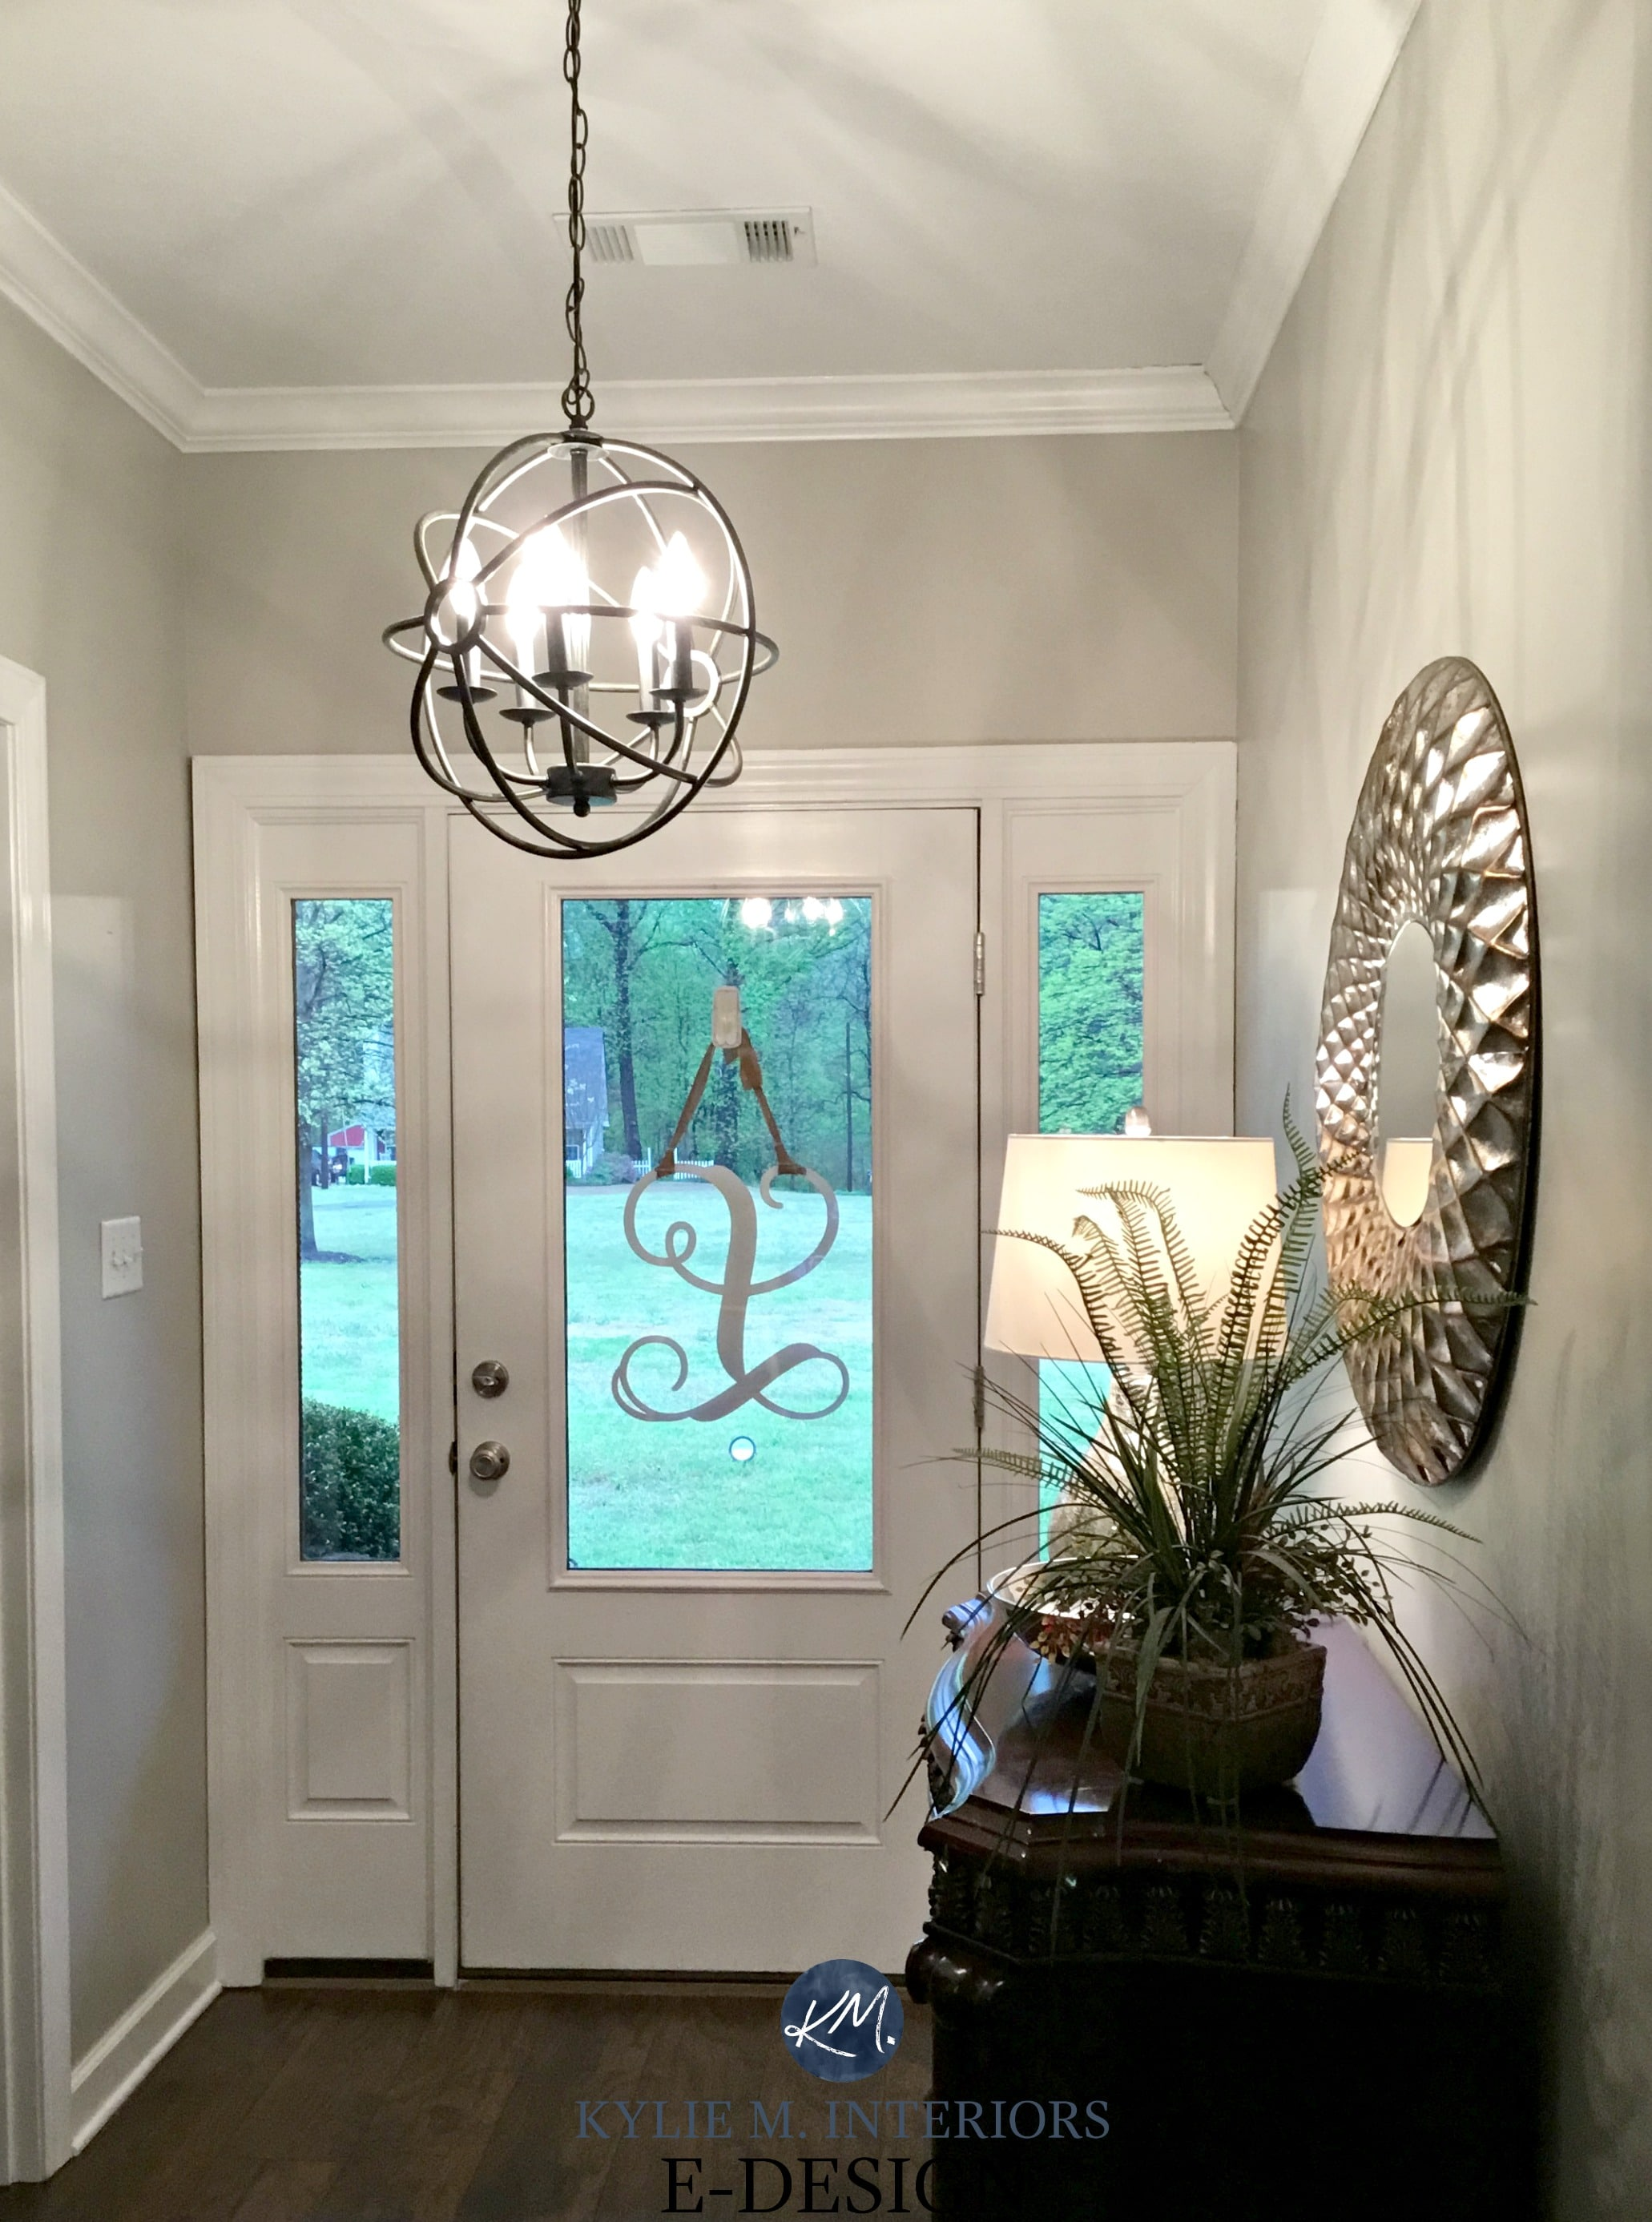 Sherwin williams anew gray entryway greige paint colour - Best foyer colors 2018 ...